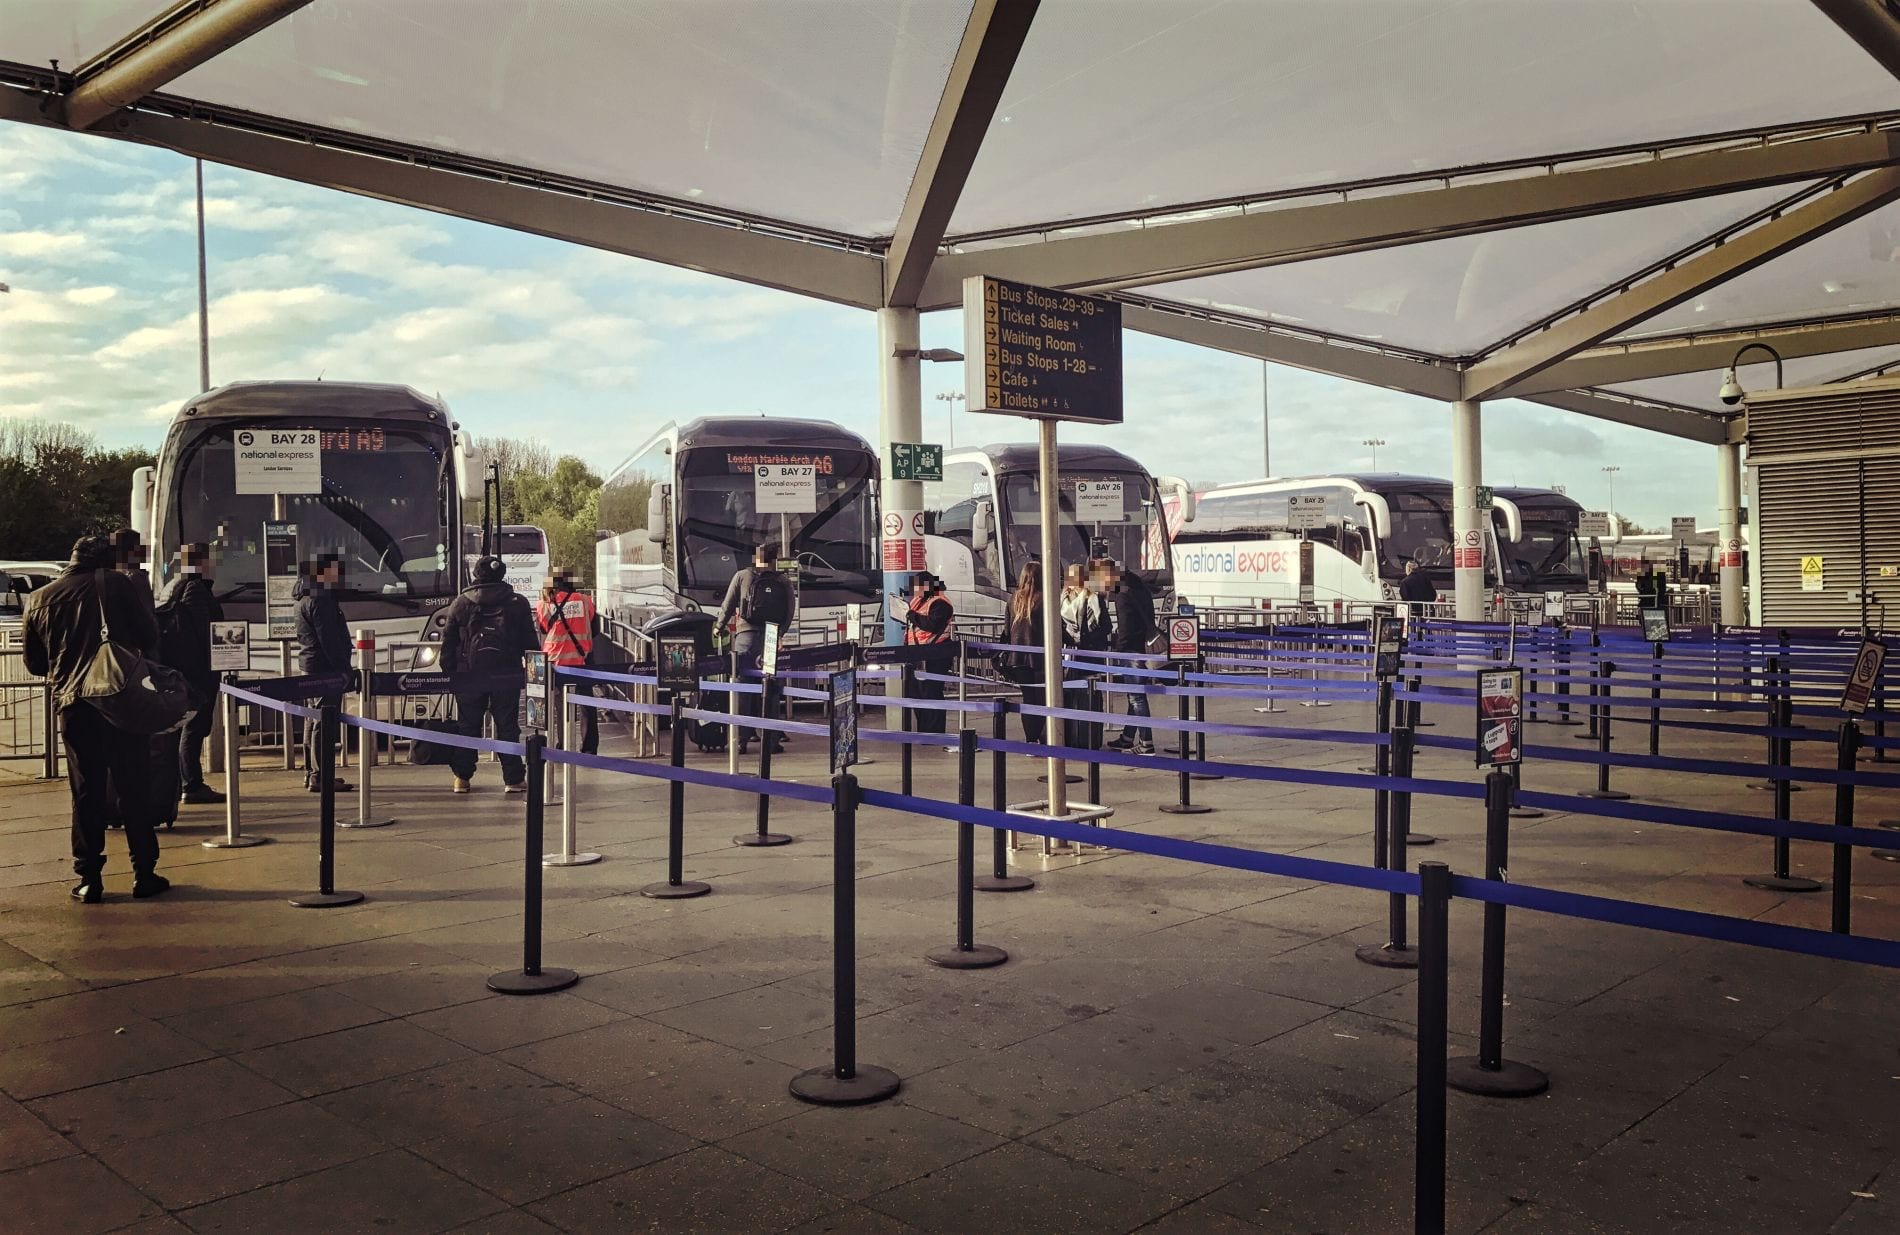 bushaltestellen-stansted-airport